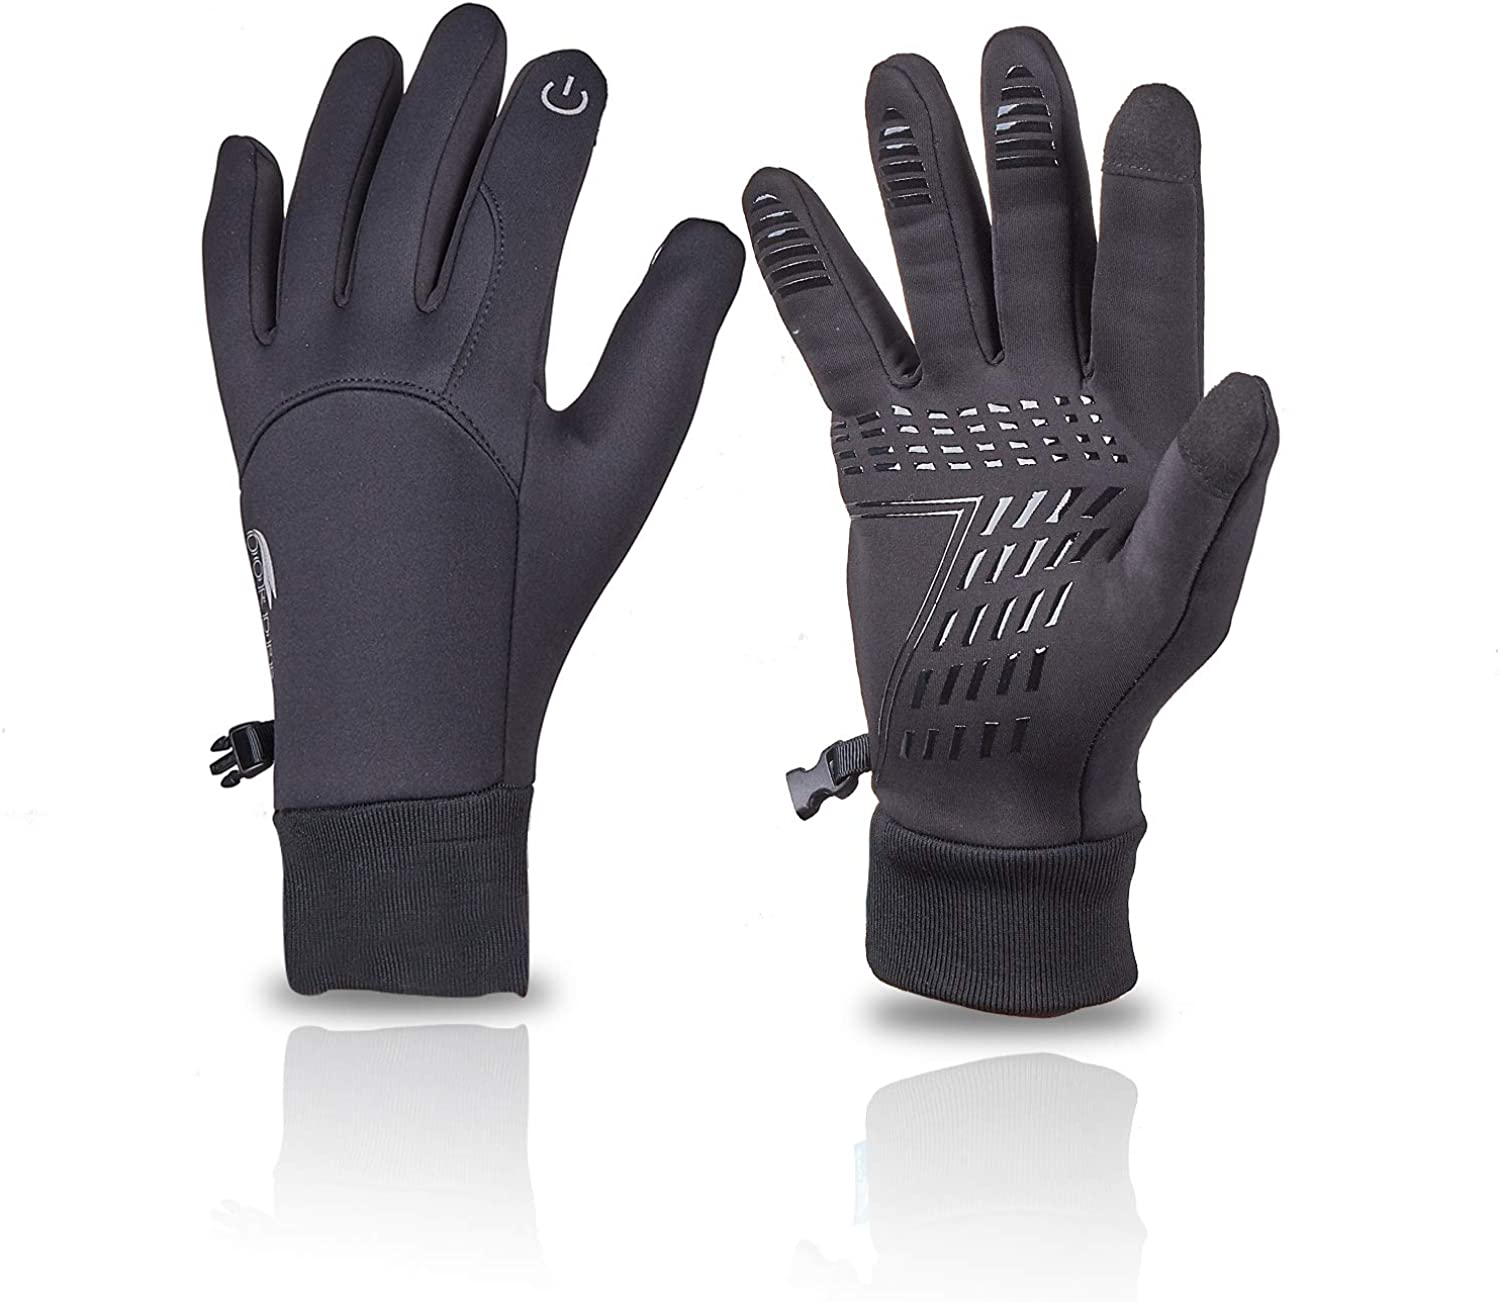 UWEIISON Cycling Gloves Warm Gloves Windproof Cold Weather gloves